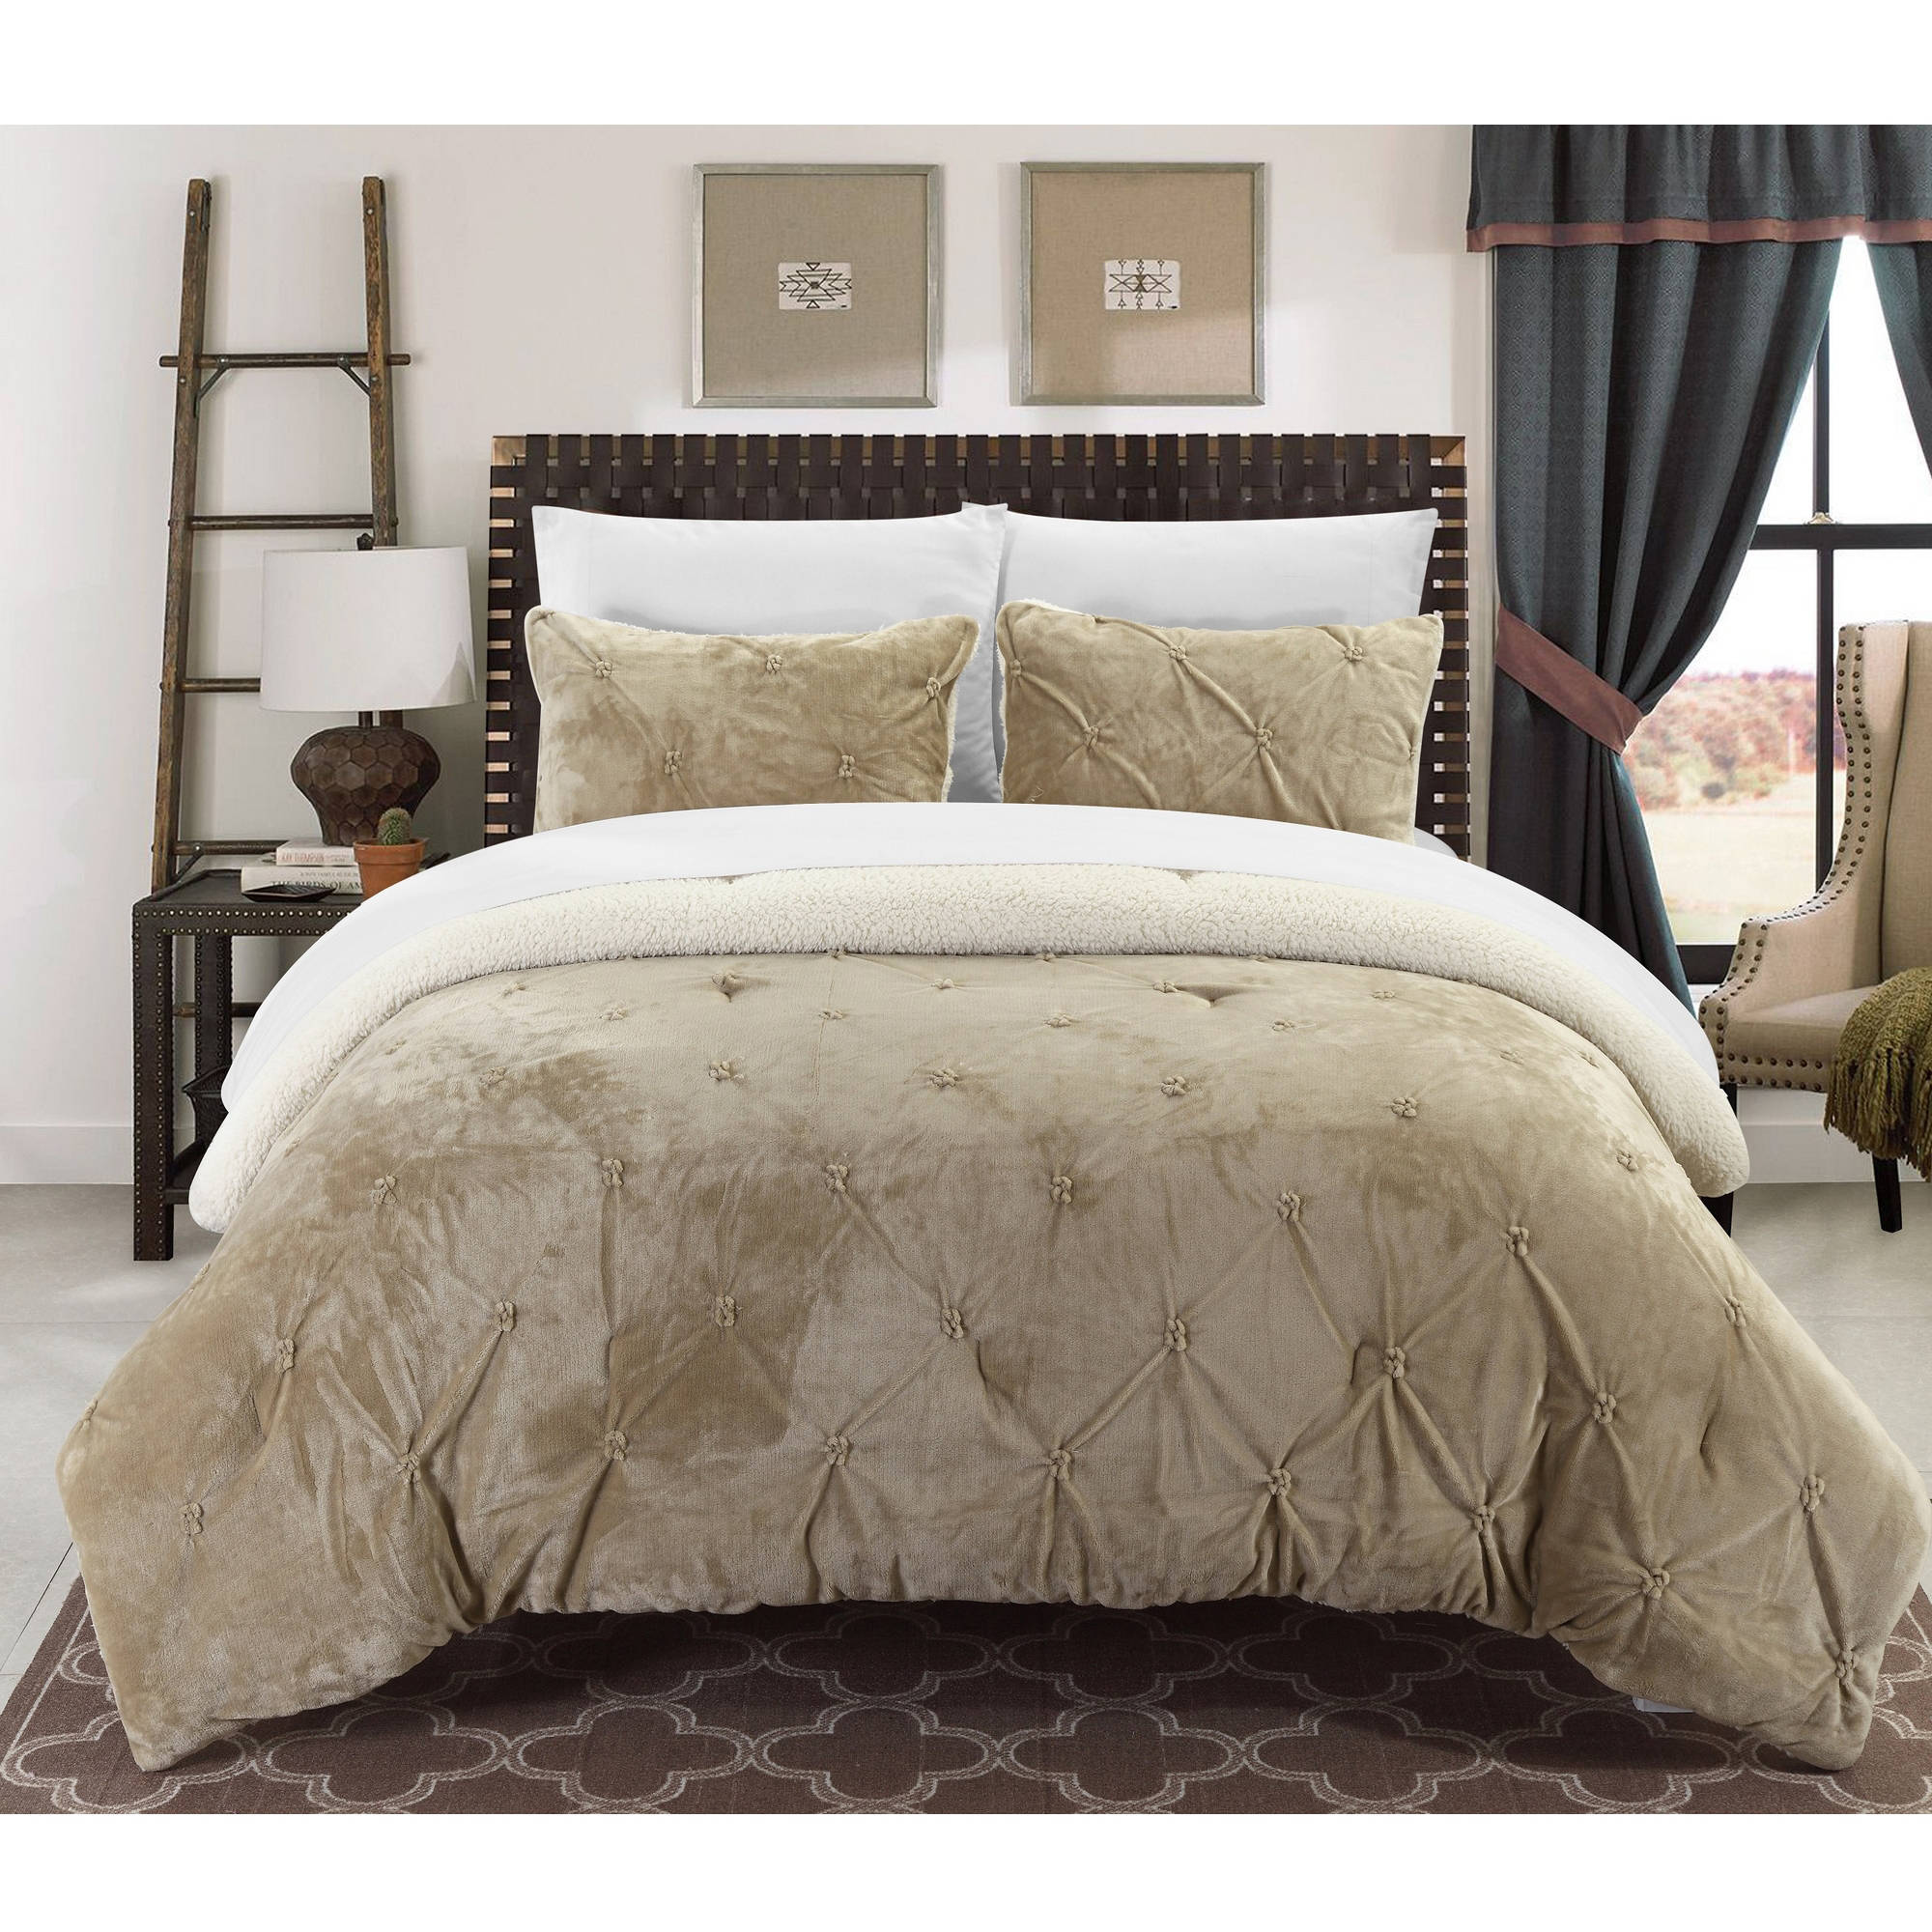 Chic Home Chiara 2-Piece Sherpa Lined Bed-in-a-Bag Comforter Set